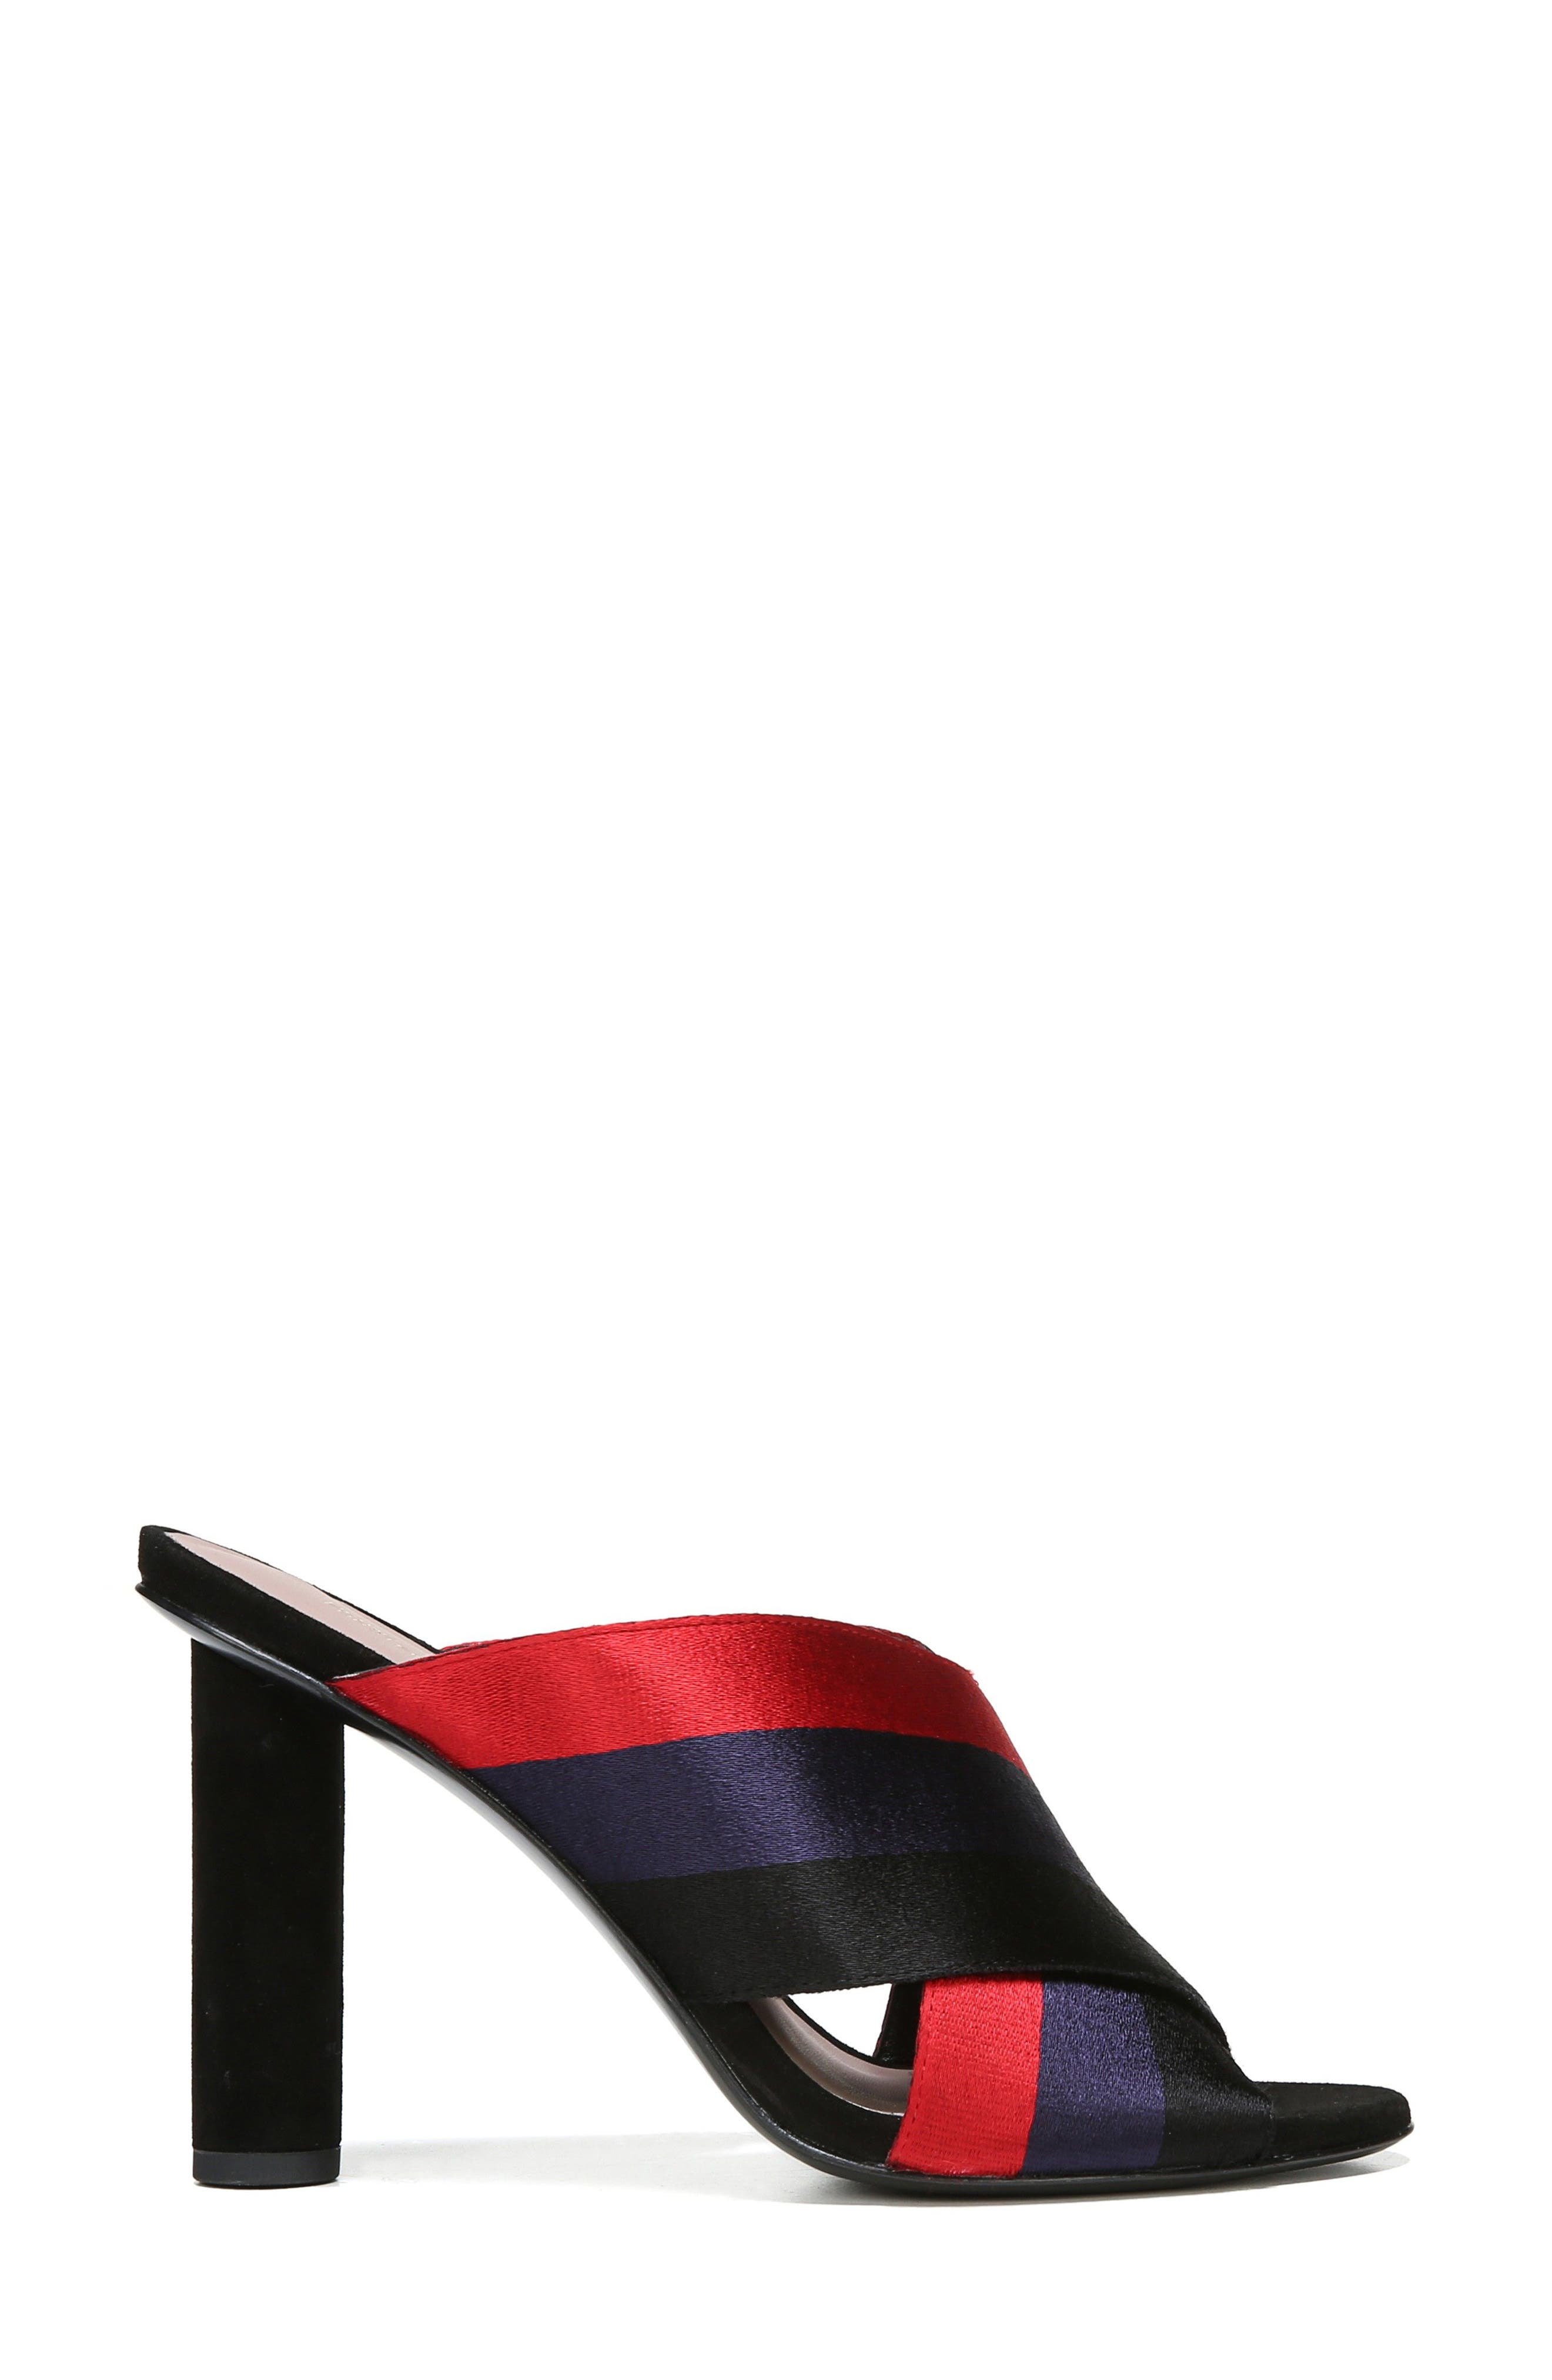 Emilyn Sandal,                             Alternate thumbnail 3, color,                             Navy/ Lipstick